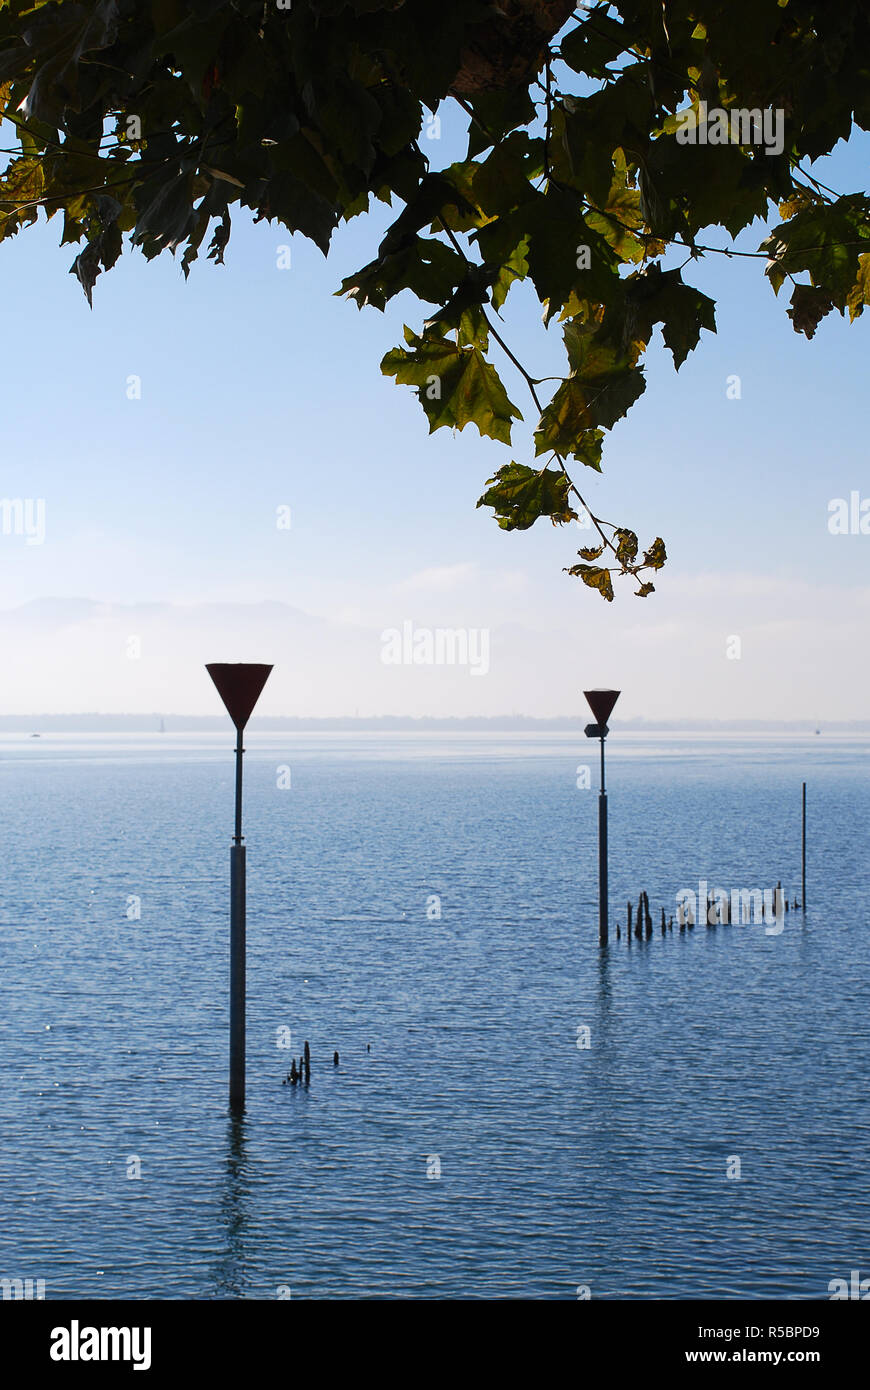 "Coast of Lindau, Bodensee, Germany. Position in Lindau ""Oskar-Groll-Anlage"". Stock Photo"